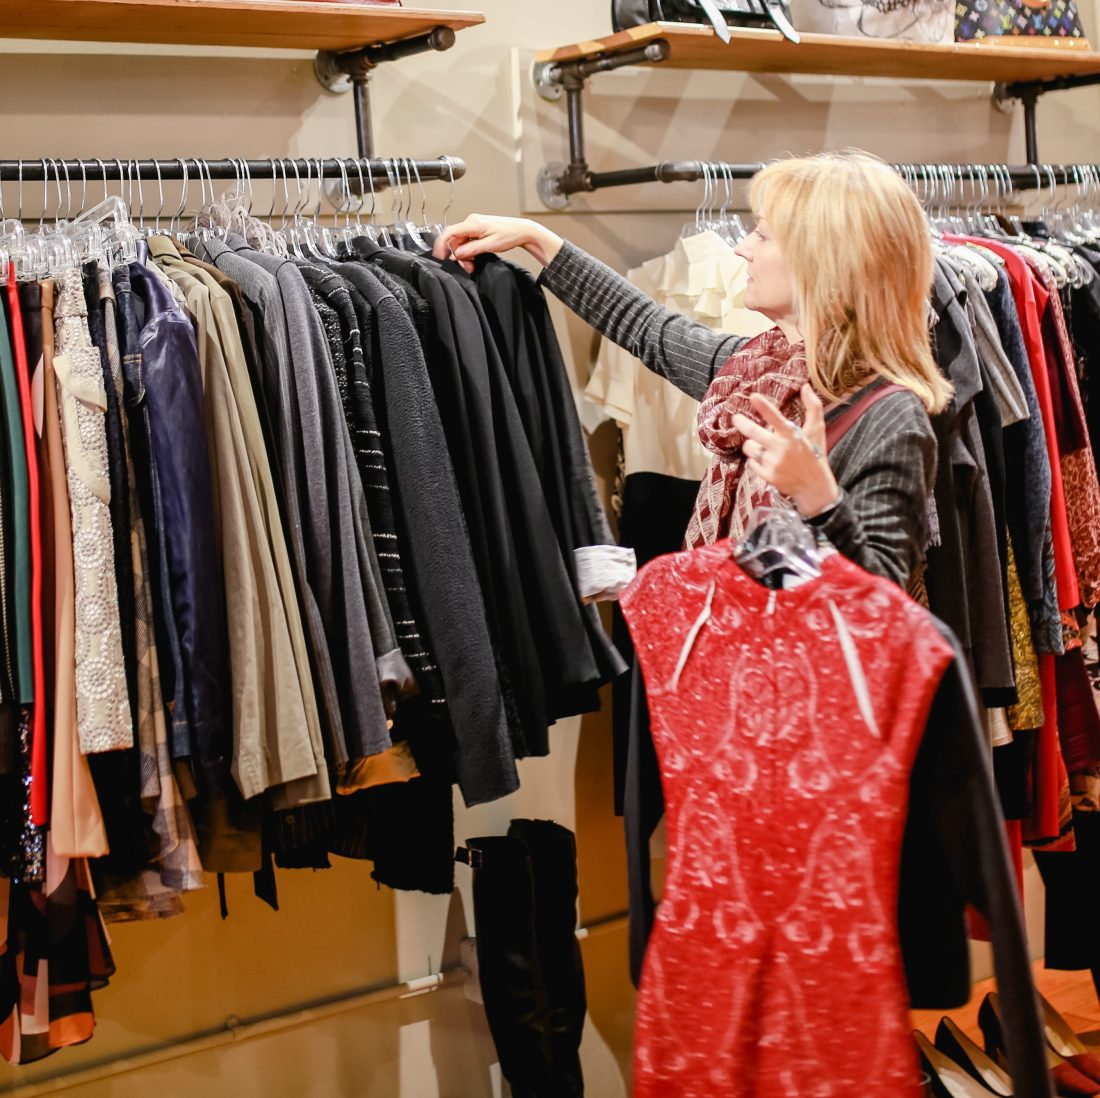 Designer clothes at Sell Your Sole Consignment in Seattle.